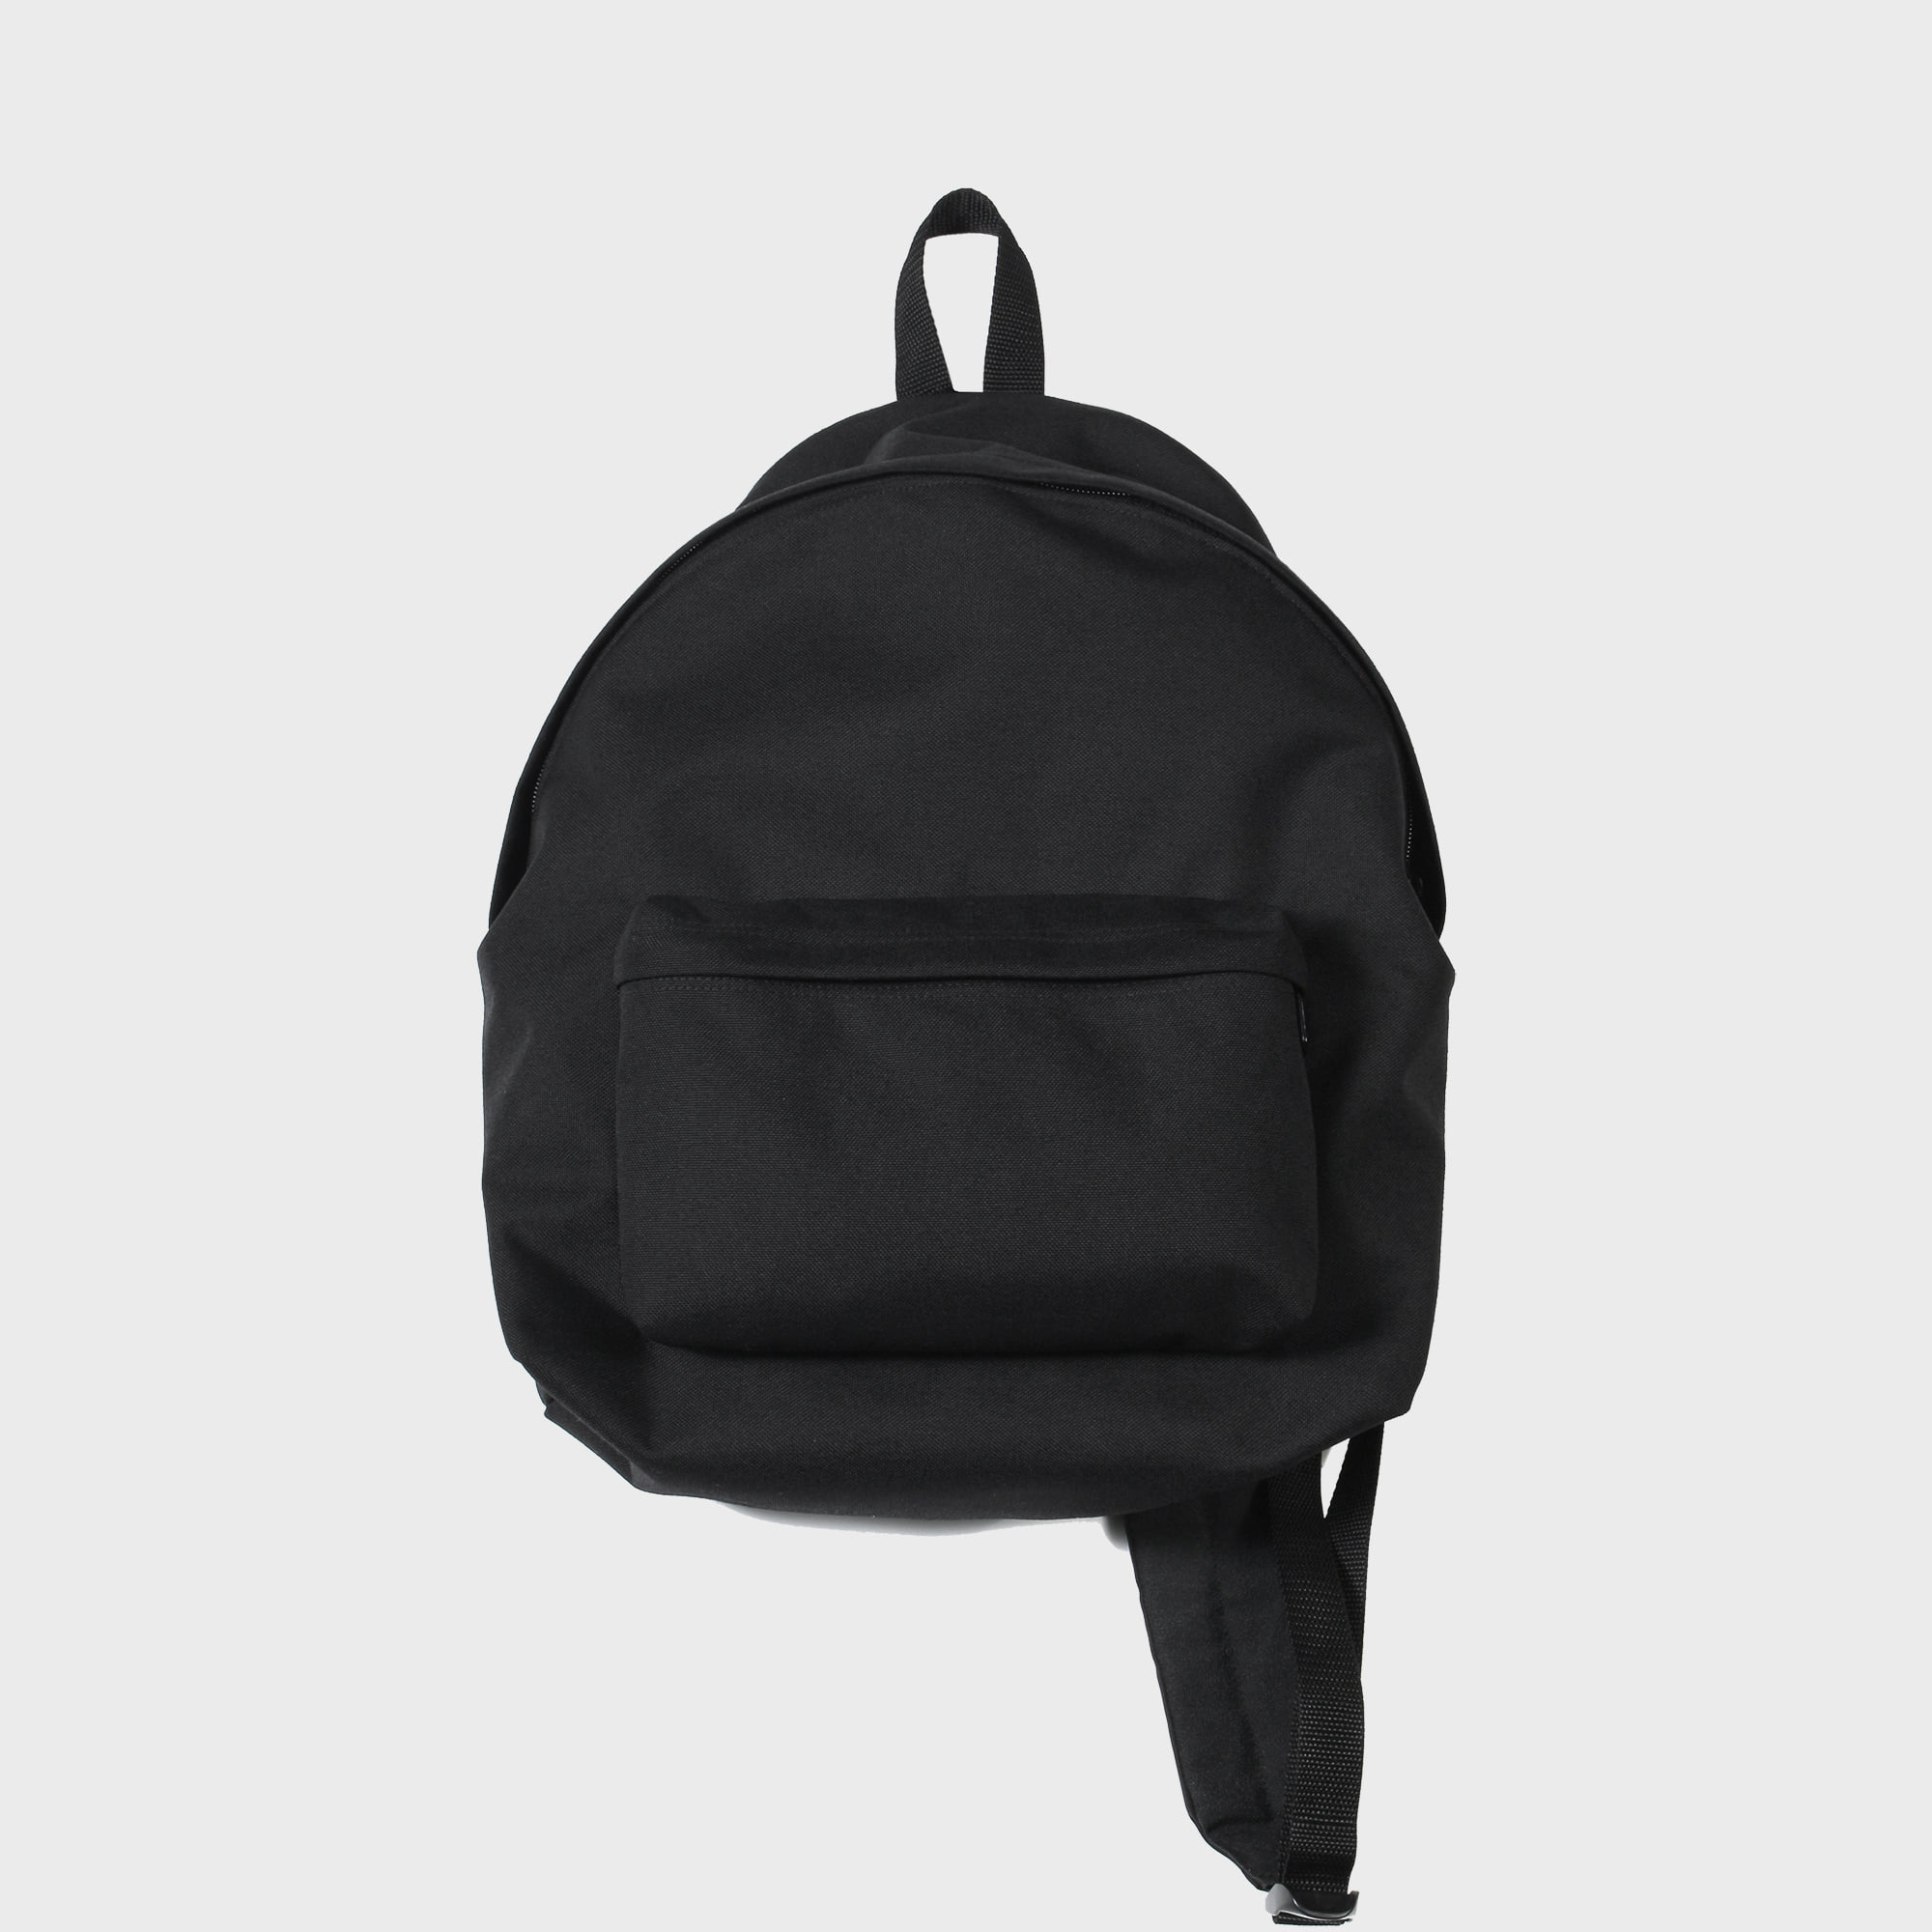 Basic Sling Backpack